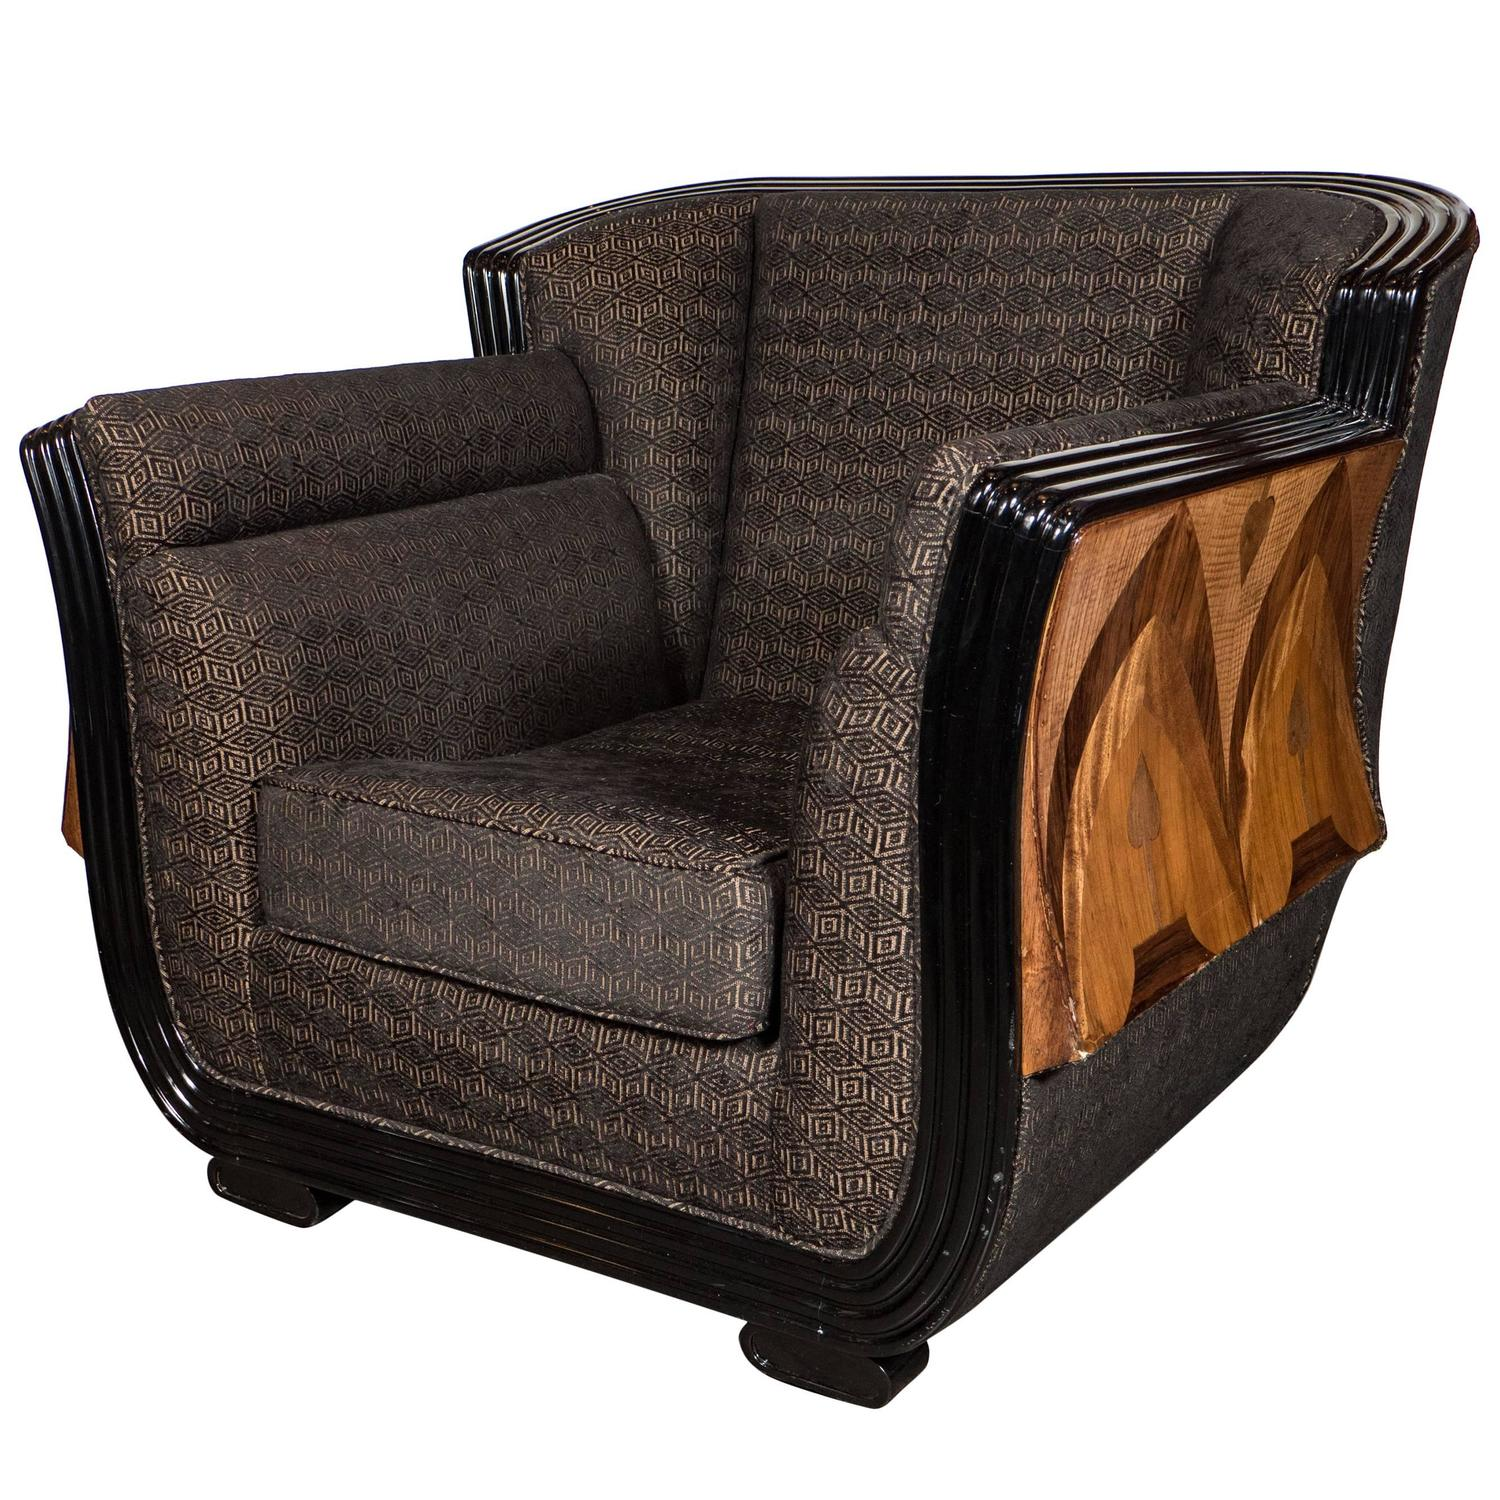 Art Deco Club Chair with Exotic Wood Inlay Design and Black Lacquer